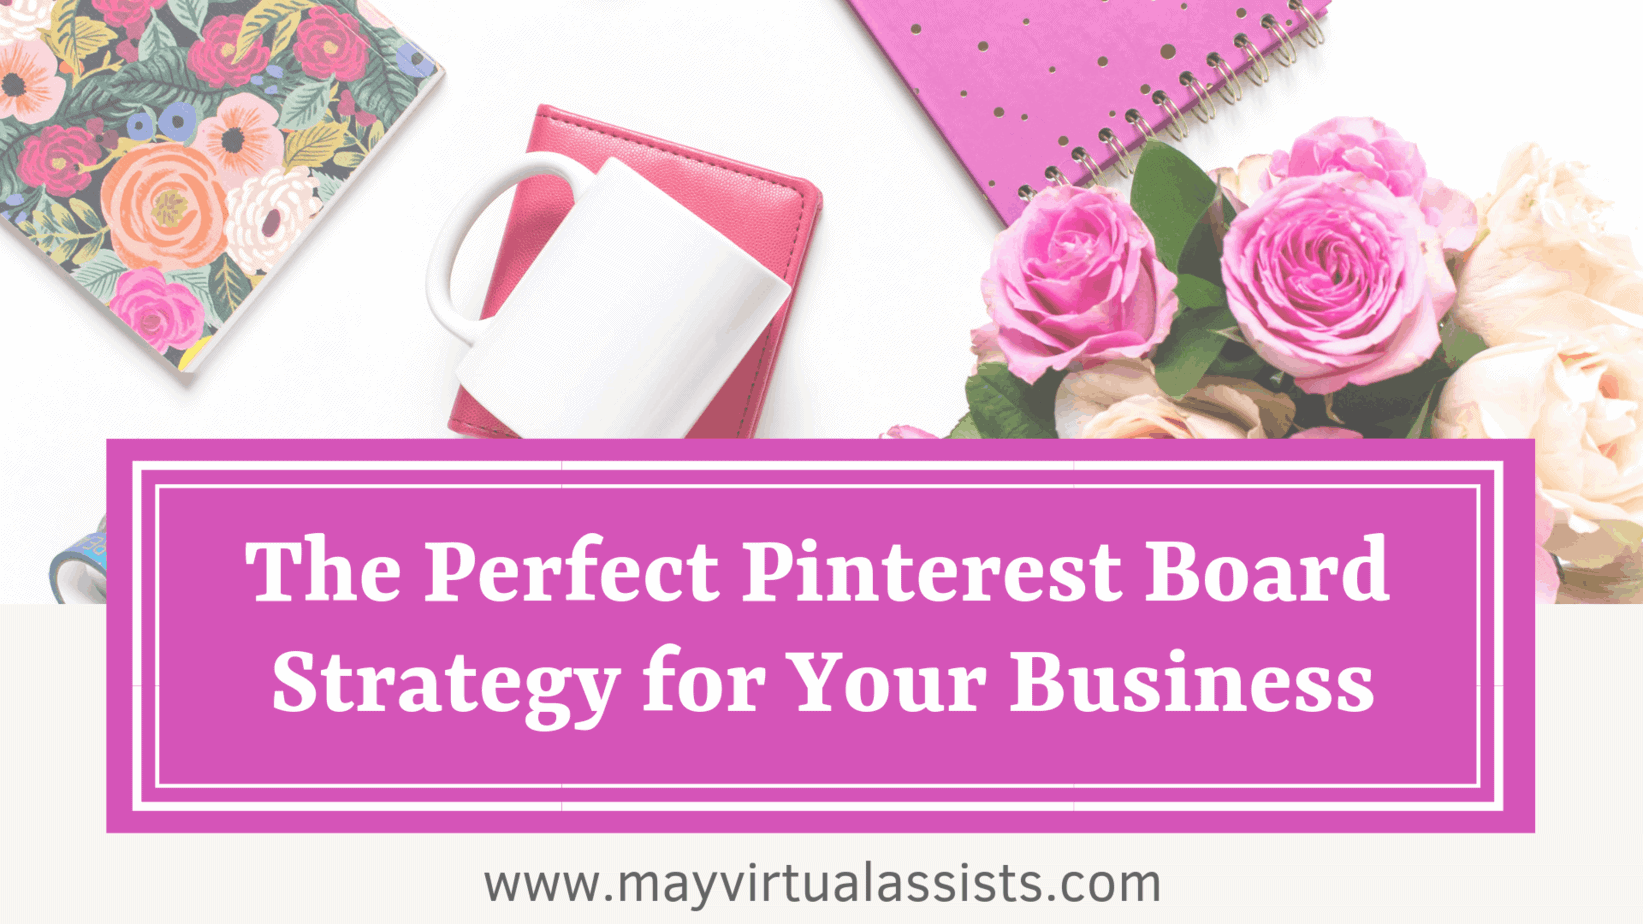 flatlay with flowers, notebooks, mug, and The Perfect Pinterest Board Strategy for your business and mayvirtualassists.com